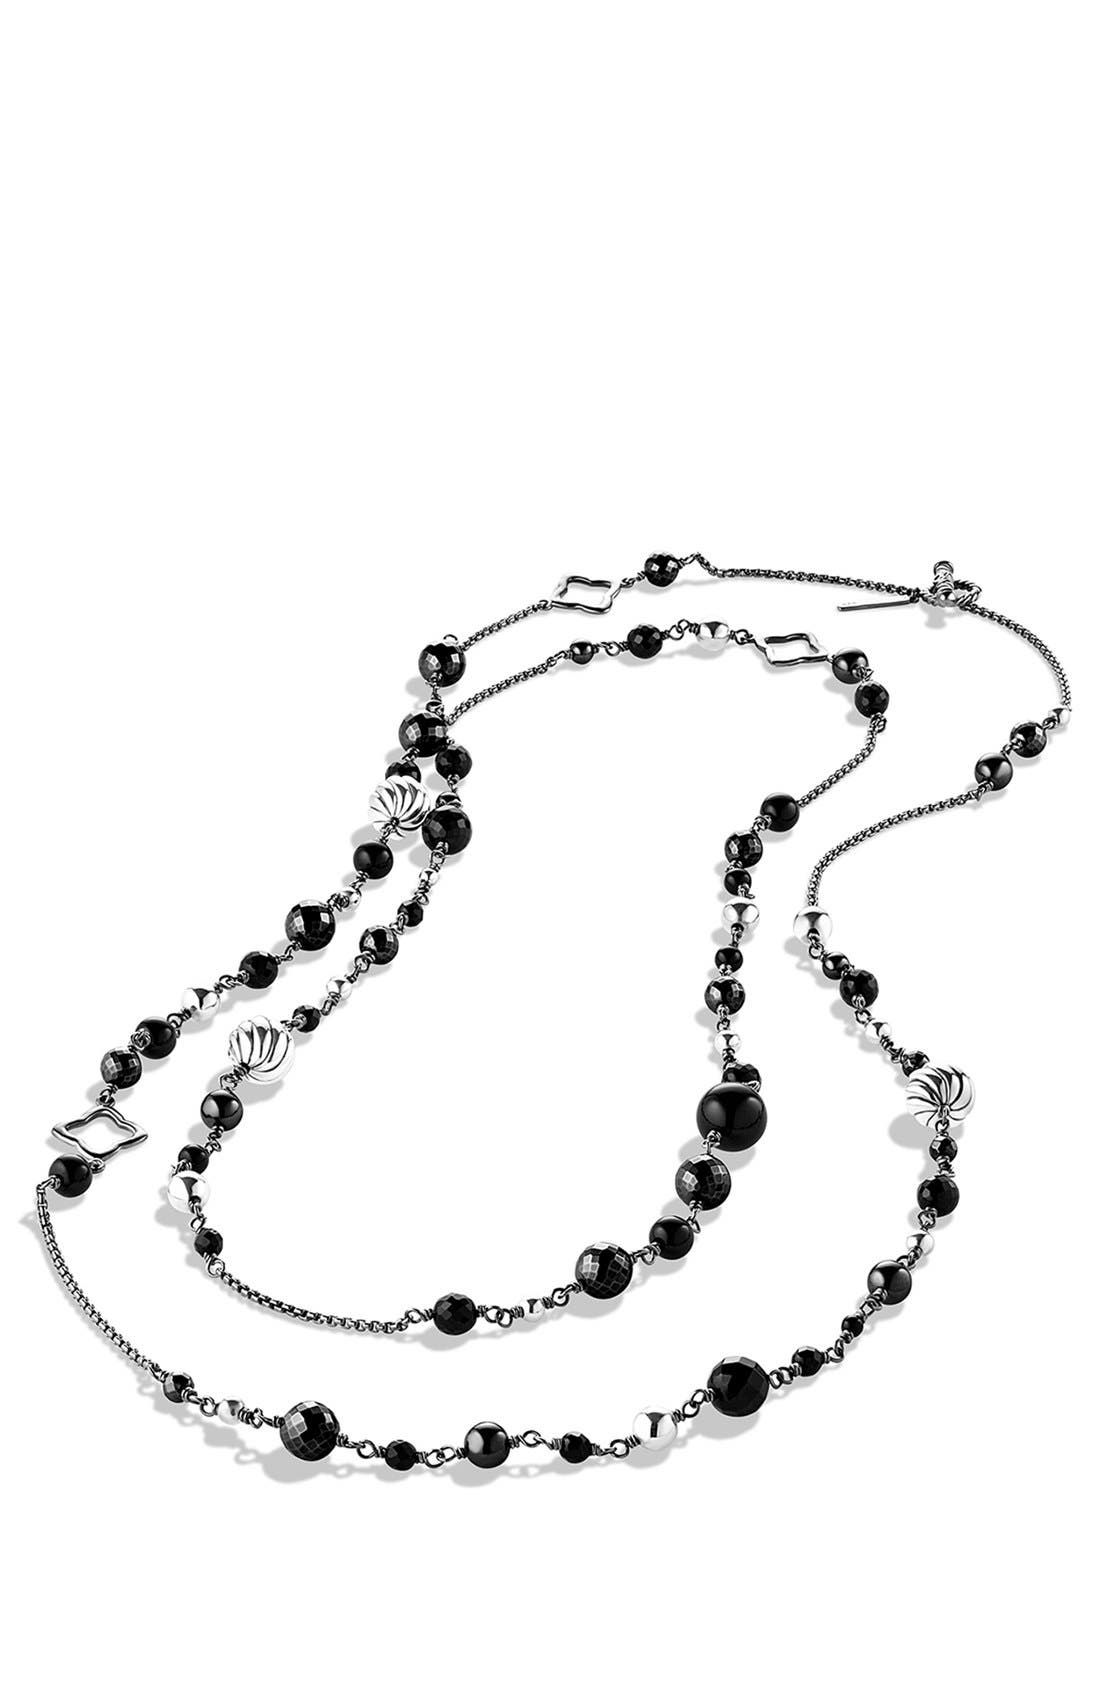 'DY Elements' Chain Necklace with Black Onyx and Hematine,                             Alternate thumbnail 3, color,                             BLACK ONYX